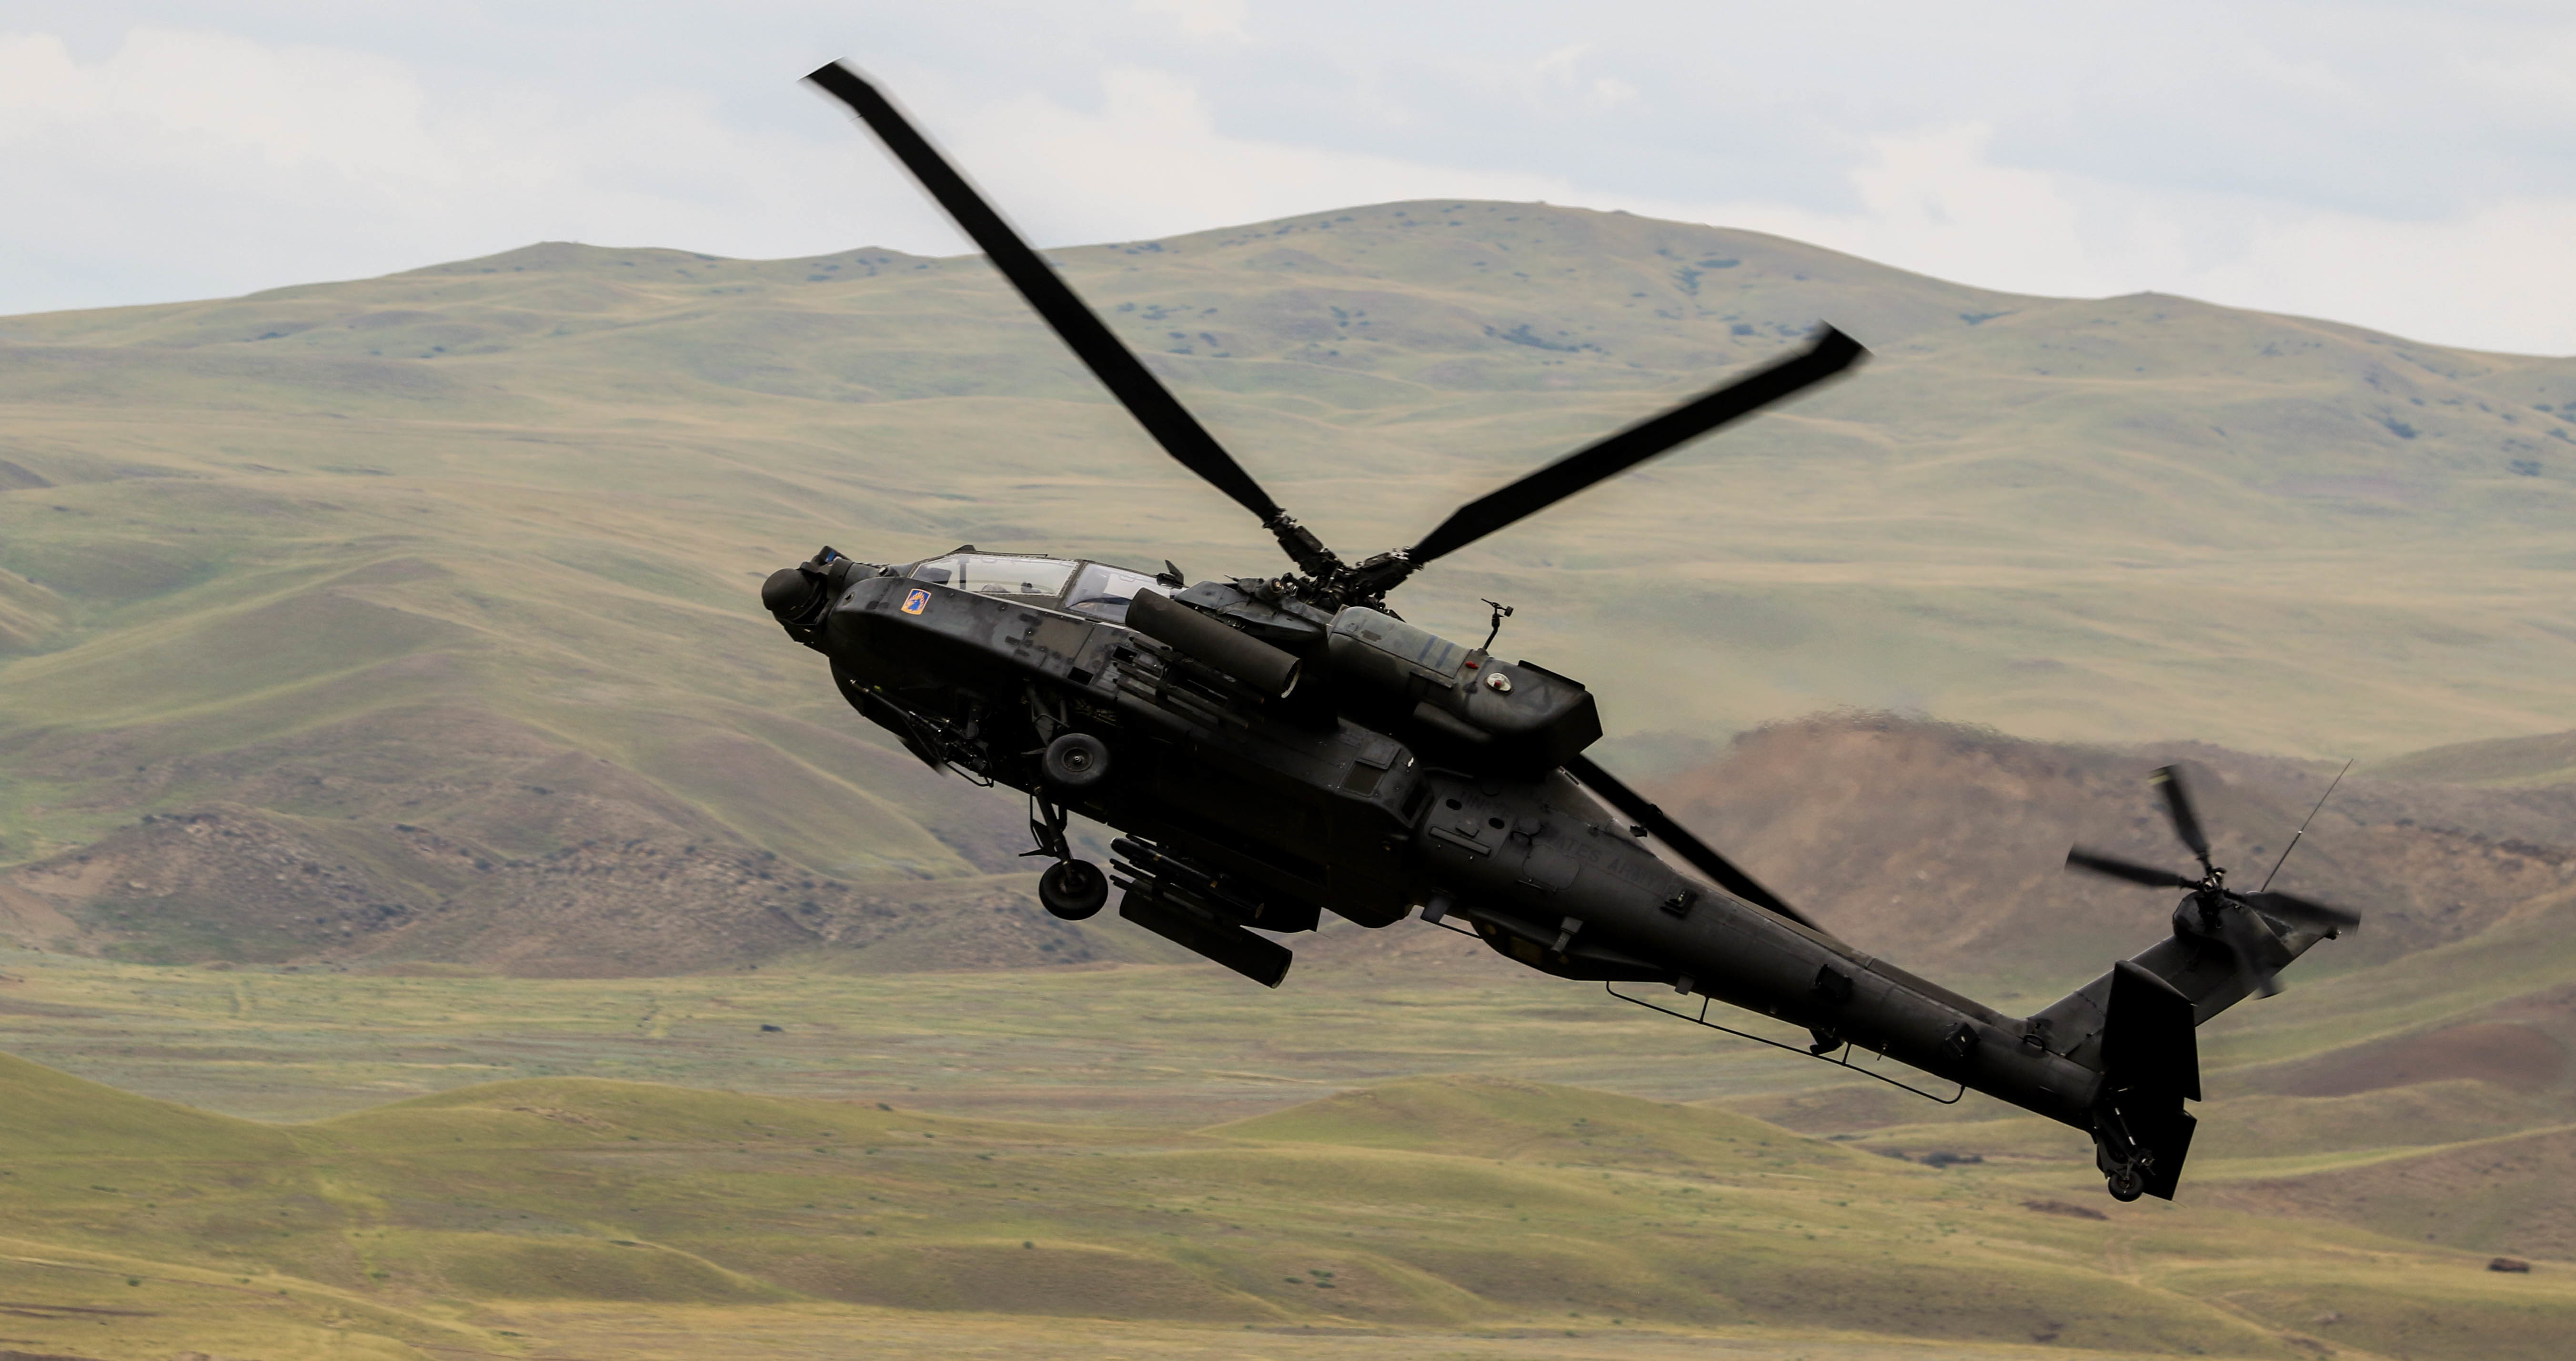 An AH-64 Apache helicopter flies over Vaziani Training Area, Georgia during combined live-fire exercise, Aug. 15, 2018. The exercise was part of the culmination of Noble Partner 18, a cooperatively-led multinational training exercise in its fourth iteration which supported the training of Georgian Armed Forces' mechanized and Special Operation Forces, U.S. Regionally Aligned Forces, the U.S. Army and Air National Guard from the state of Georgia, and 11 other participating nations. (U.S. Army photo by Sgt. Kris Bonet)